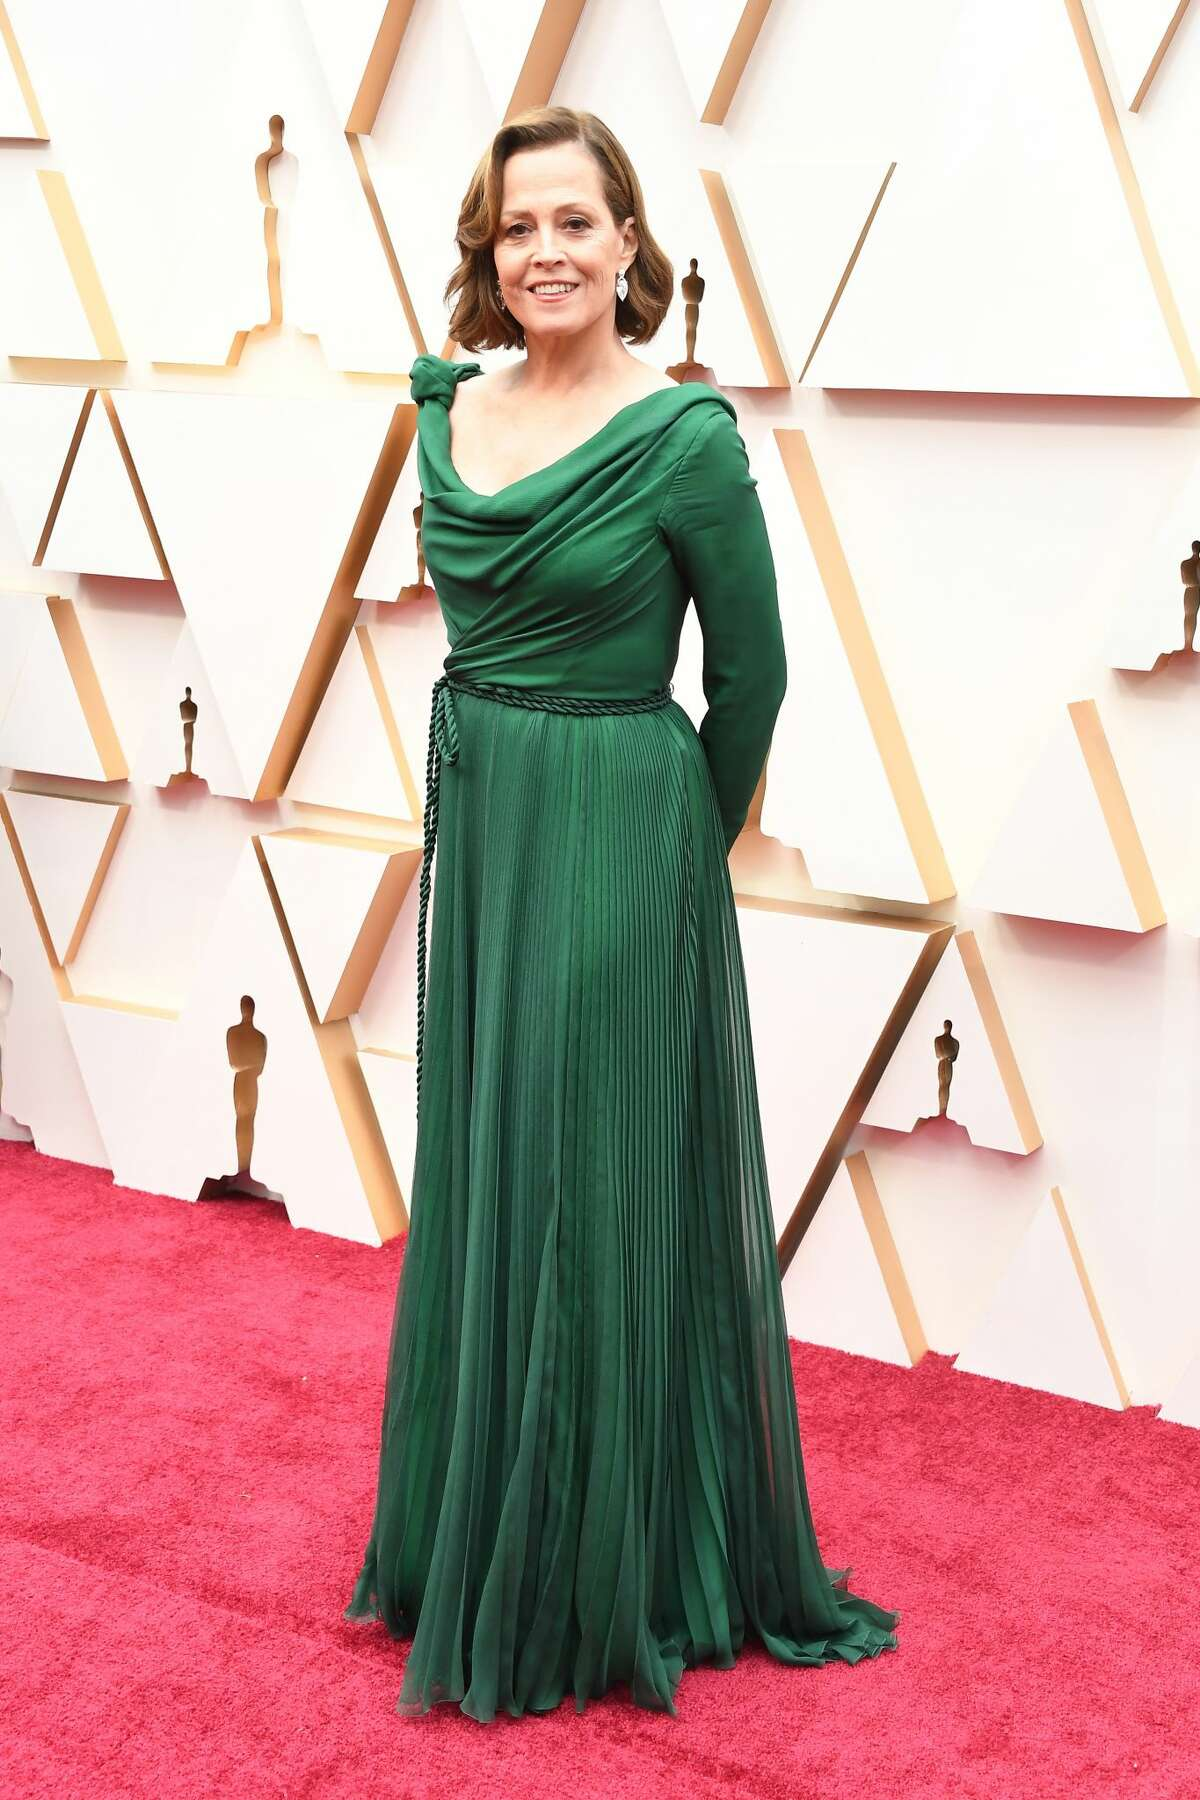 HOLLYWOOD, CALIFORNIA - FEBRUARY 09: Sigourney Weaver attends the 92nd Annual Academy Awards at Hollywood and Highland on February 09, 2020 in Hollywood, California. (Photo by Steve Granitz/WireImage)